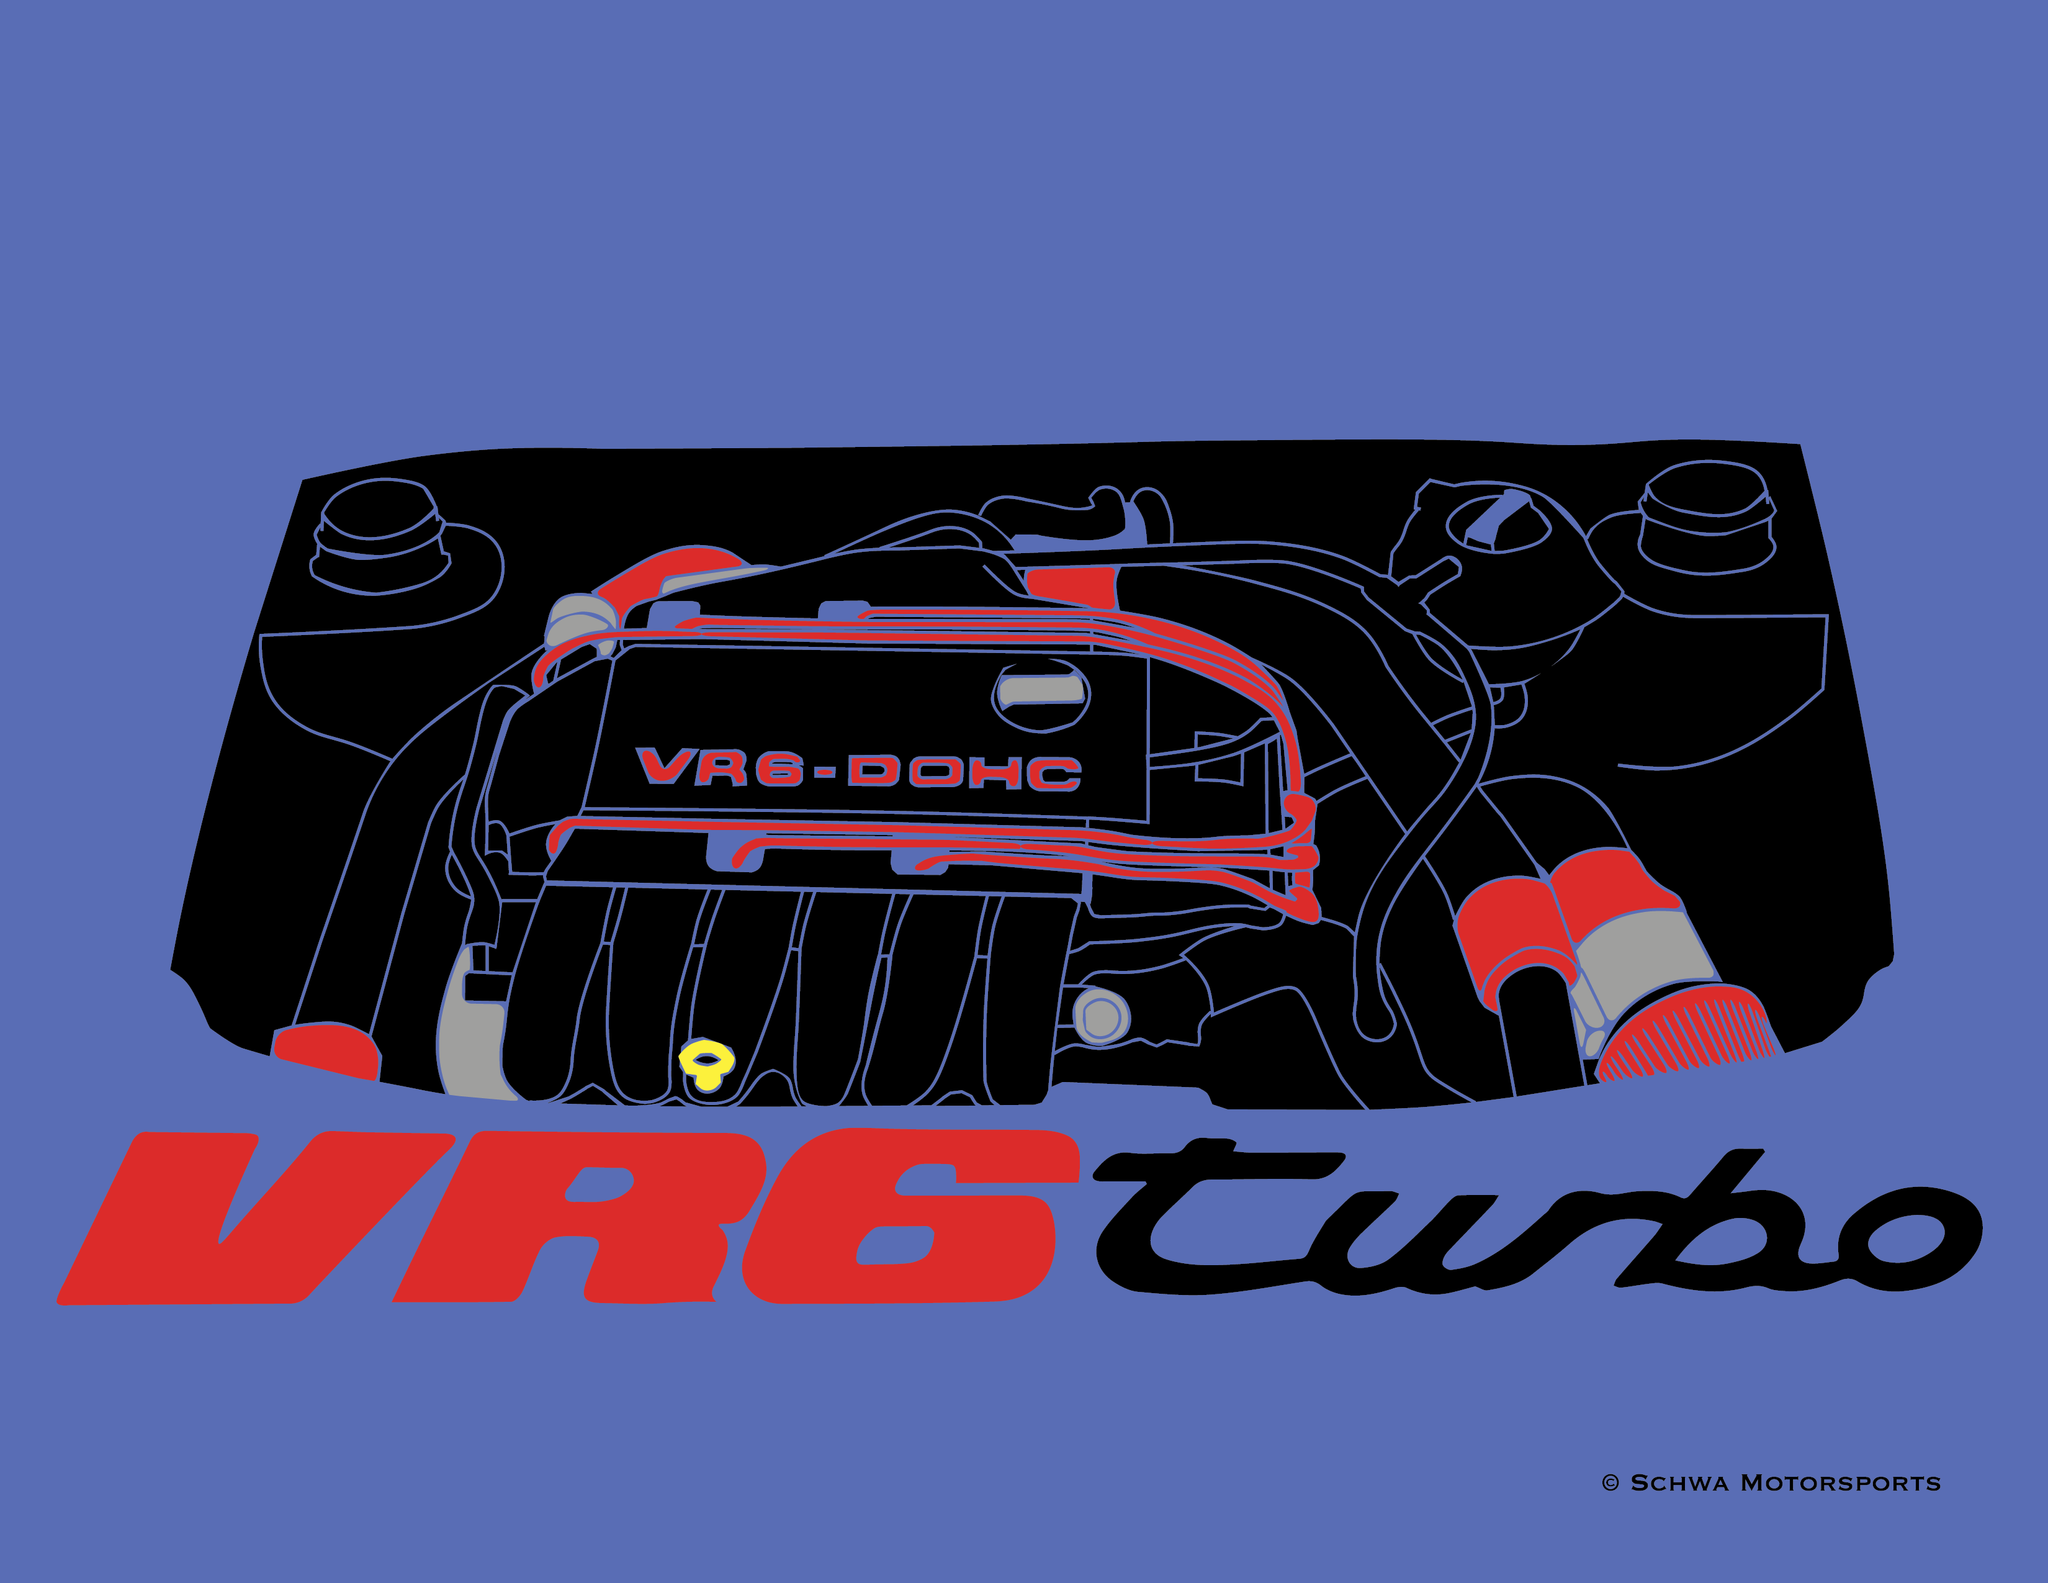 VR6 Turbo Engine Bay Multi Color T-Shirt